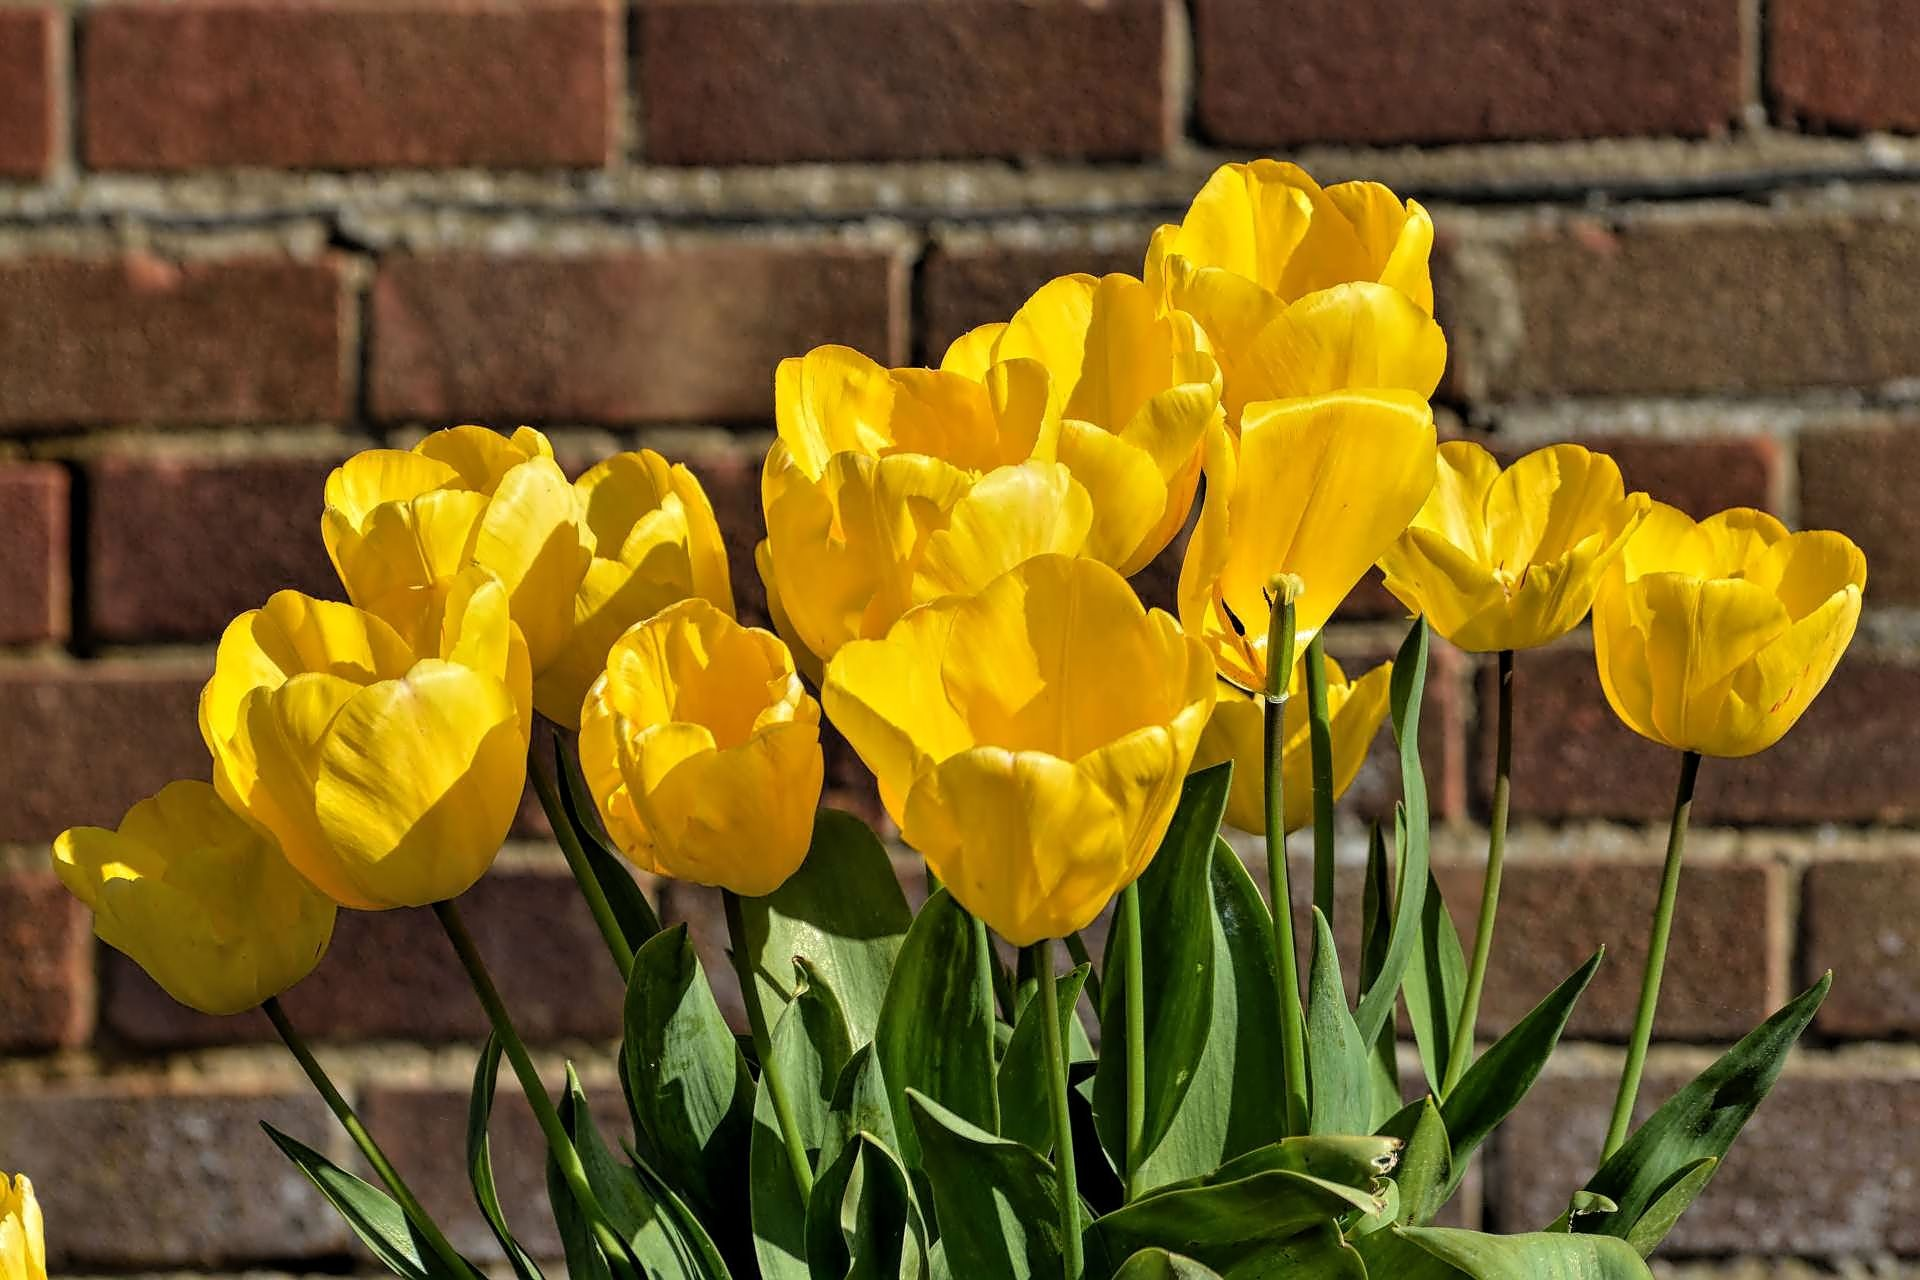 Yellow tulips against the wall by ianstandivan